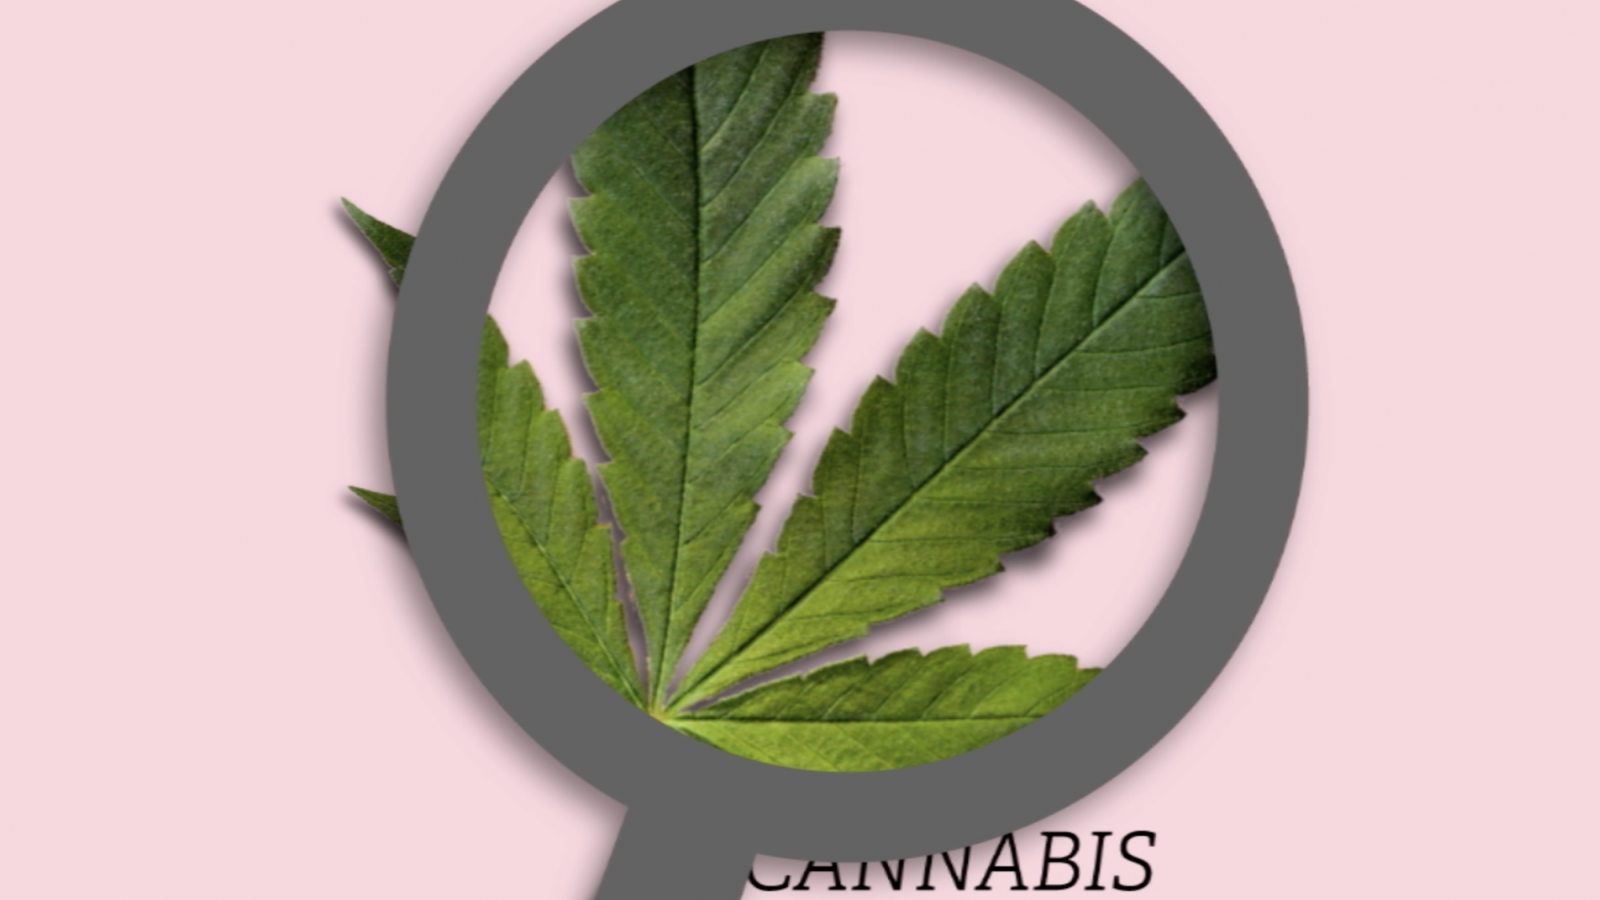 mobile lab fundraising campaign video still of A cannabis leaf with a magnifying glass over it